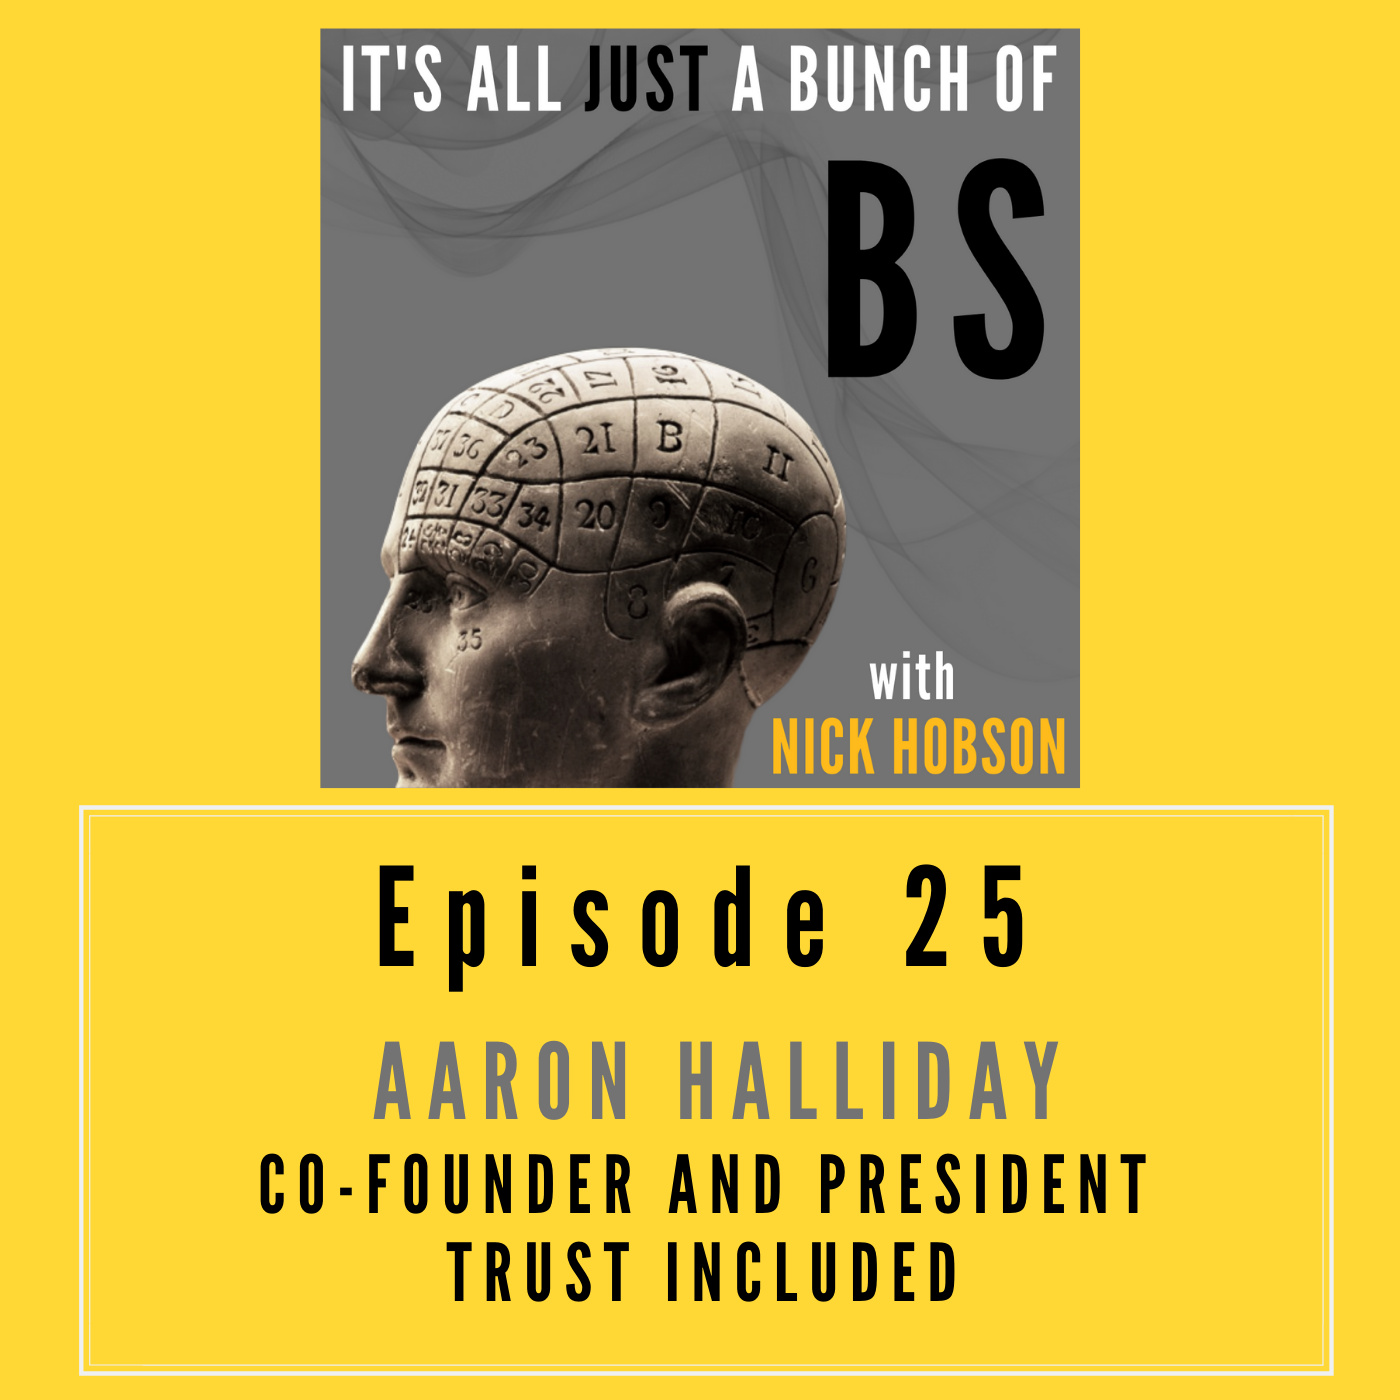 Episode 25 with AARON HALLIDAY: Jingling and Jangling All the Way - The Careful Use of Language for Applied BS